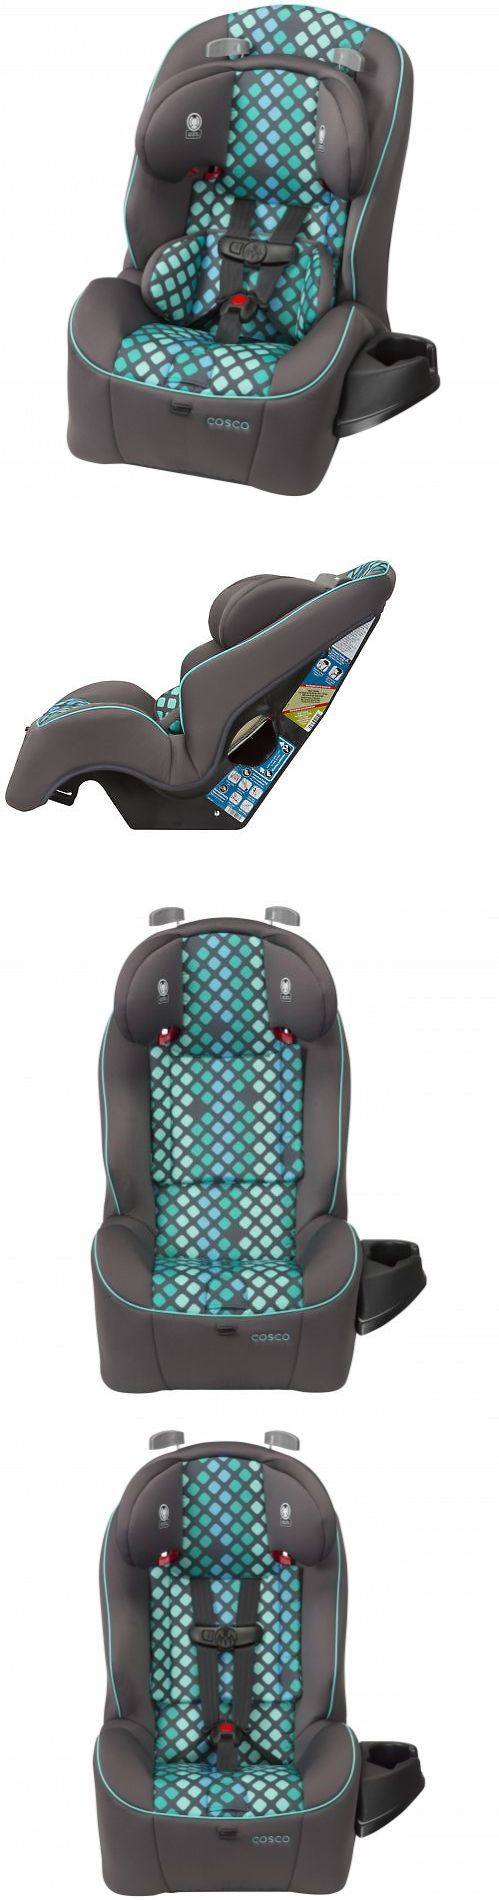 Convertible Car Seat 5 40lbs 66695 Cosco Easy Elite 3 In 1 Choose Your Pattern BUY IT NOW ONLY 8607 On EBay